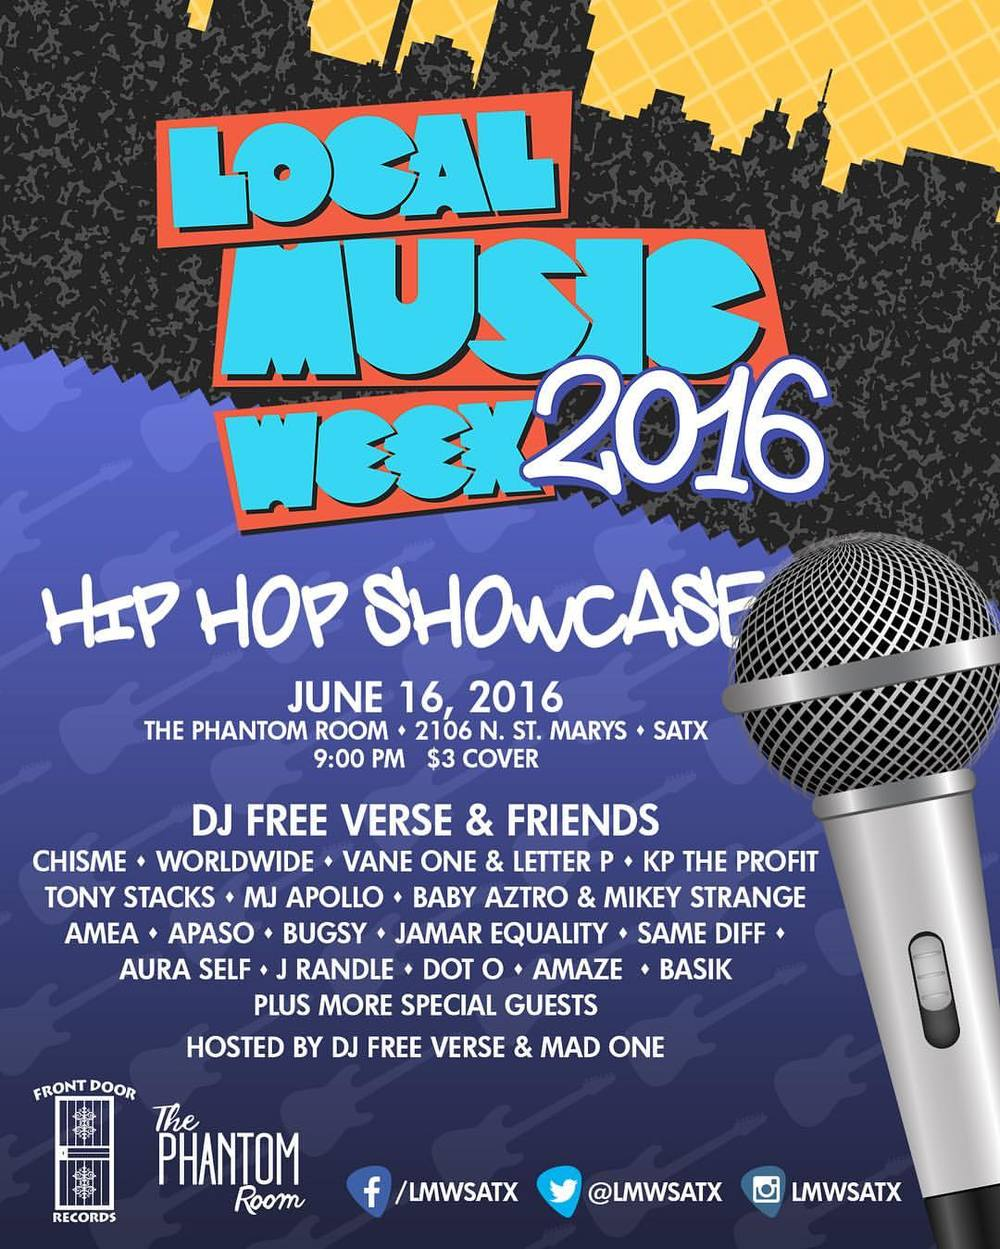 THE HOMIE DJ FREE VERSE HOSTING A SHOW FOR LOCAL MUSIC. LAST TIME THE TURN OUT WAS CRAZY MAKE SURE TO COME OUT TO THIS ONE.